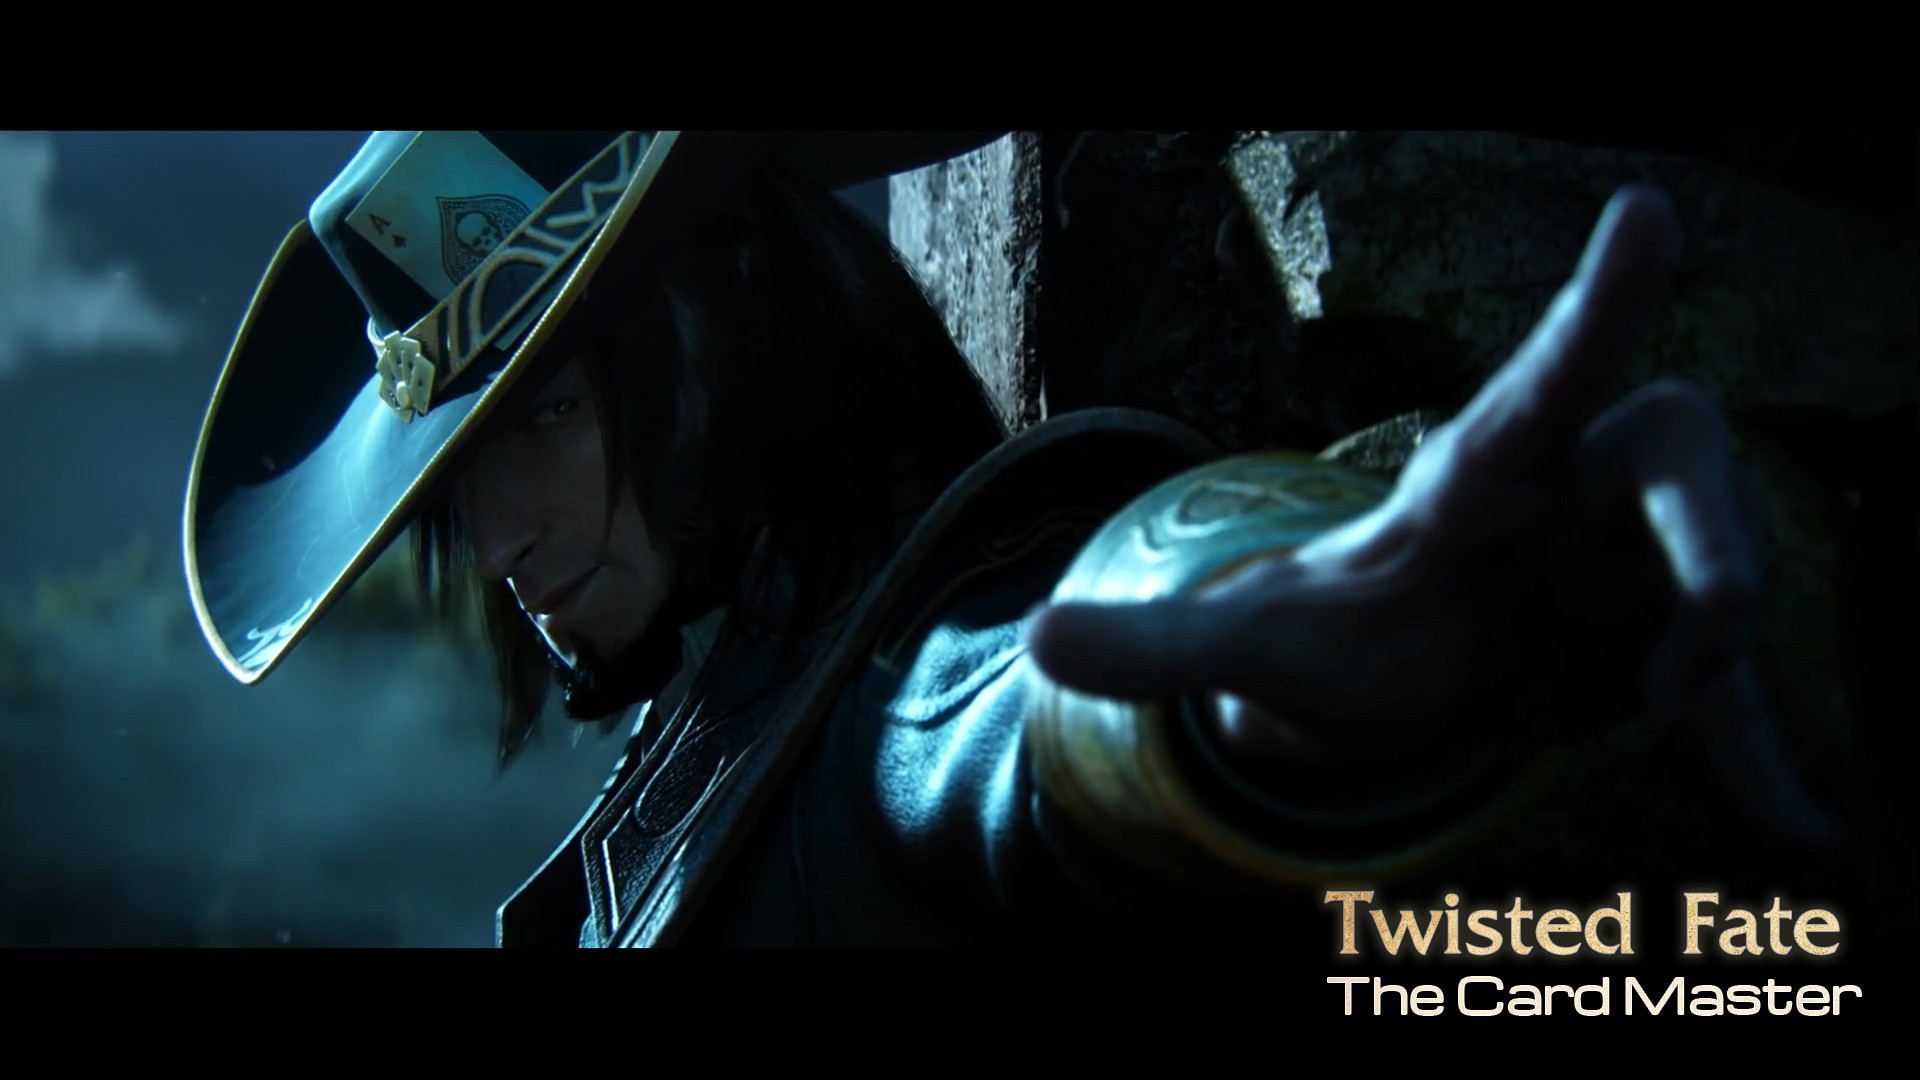 League of legends underworld twisted fate wallpaper ezmoney88 twisted fate wallpaper hd 84 images voltagebd Images